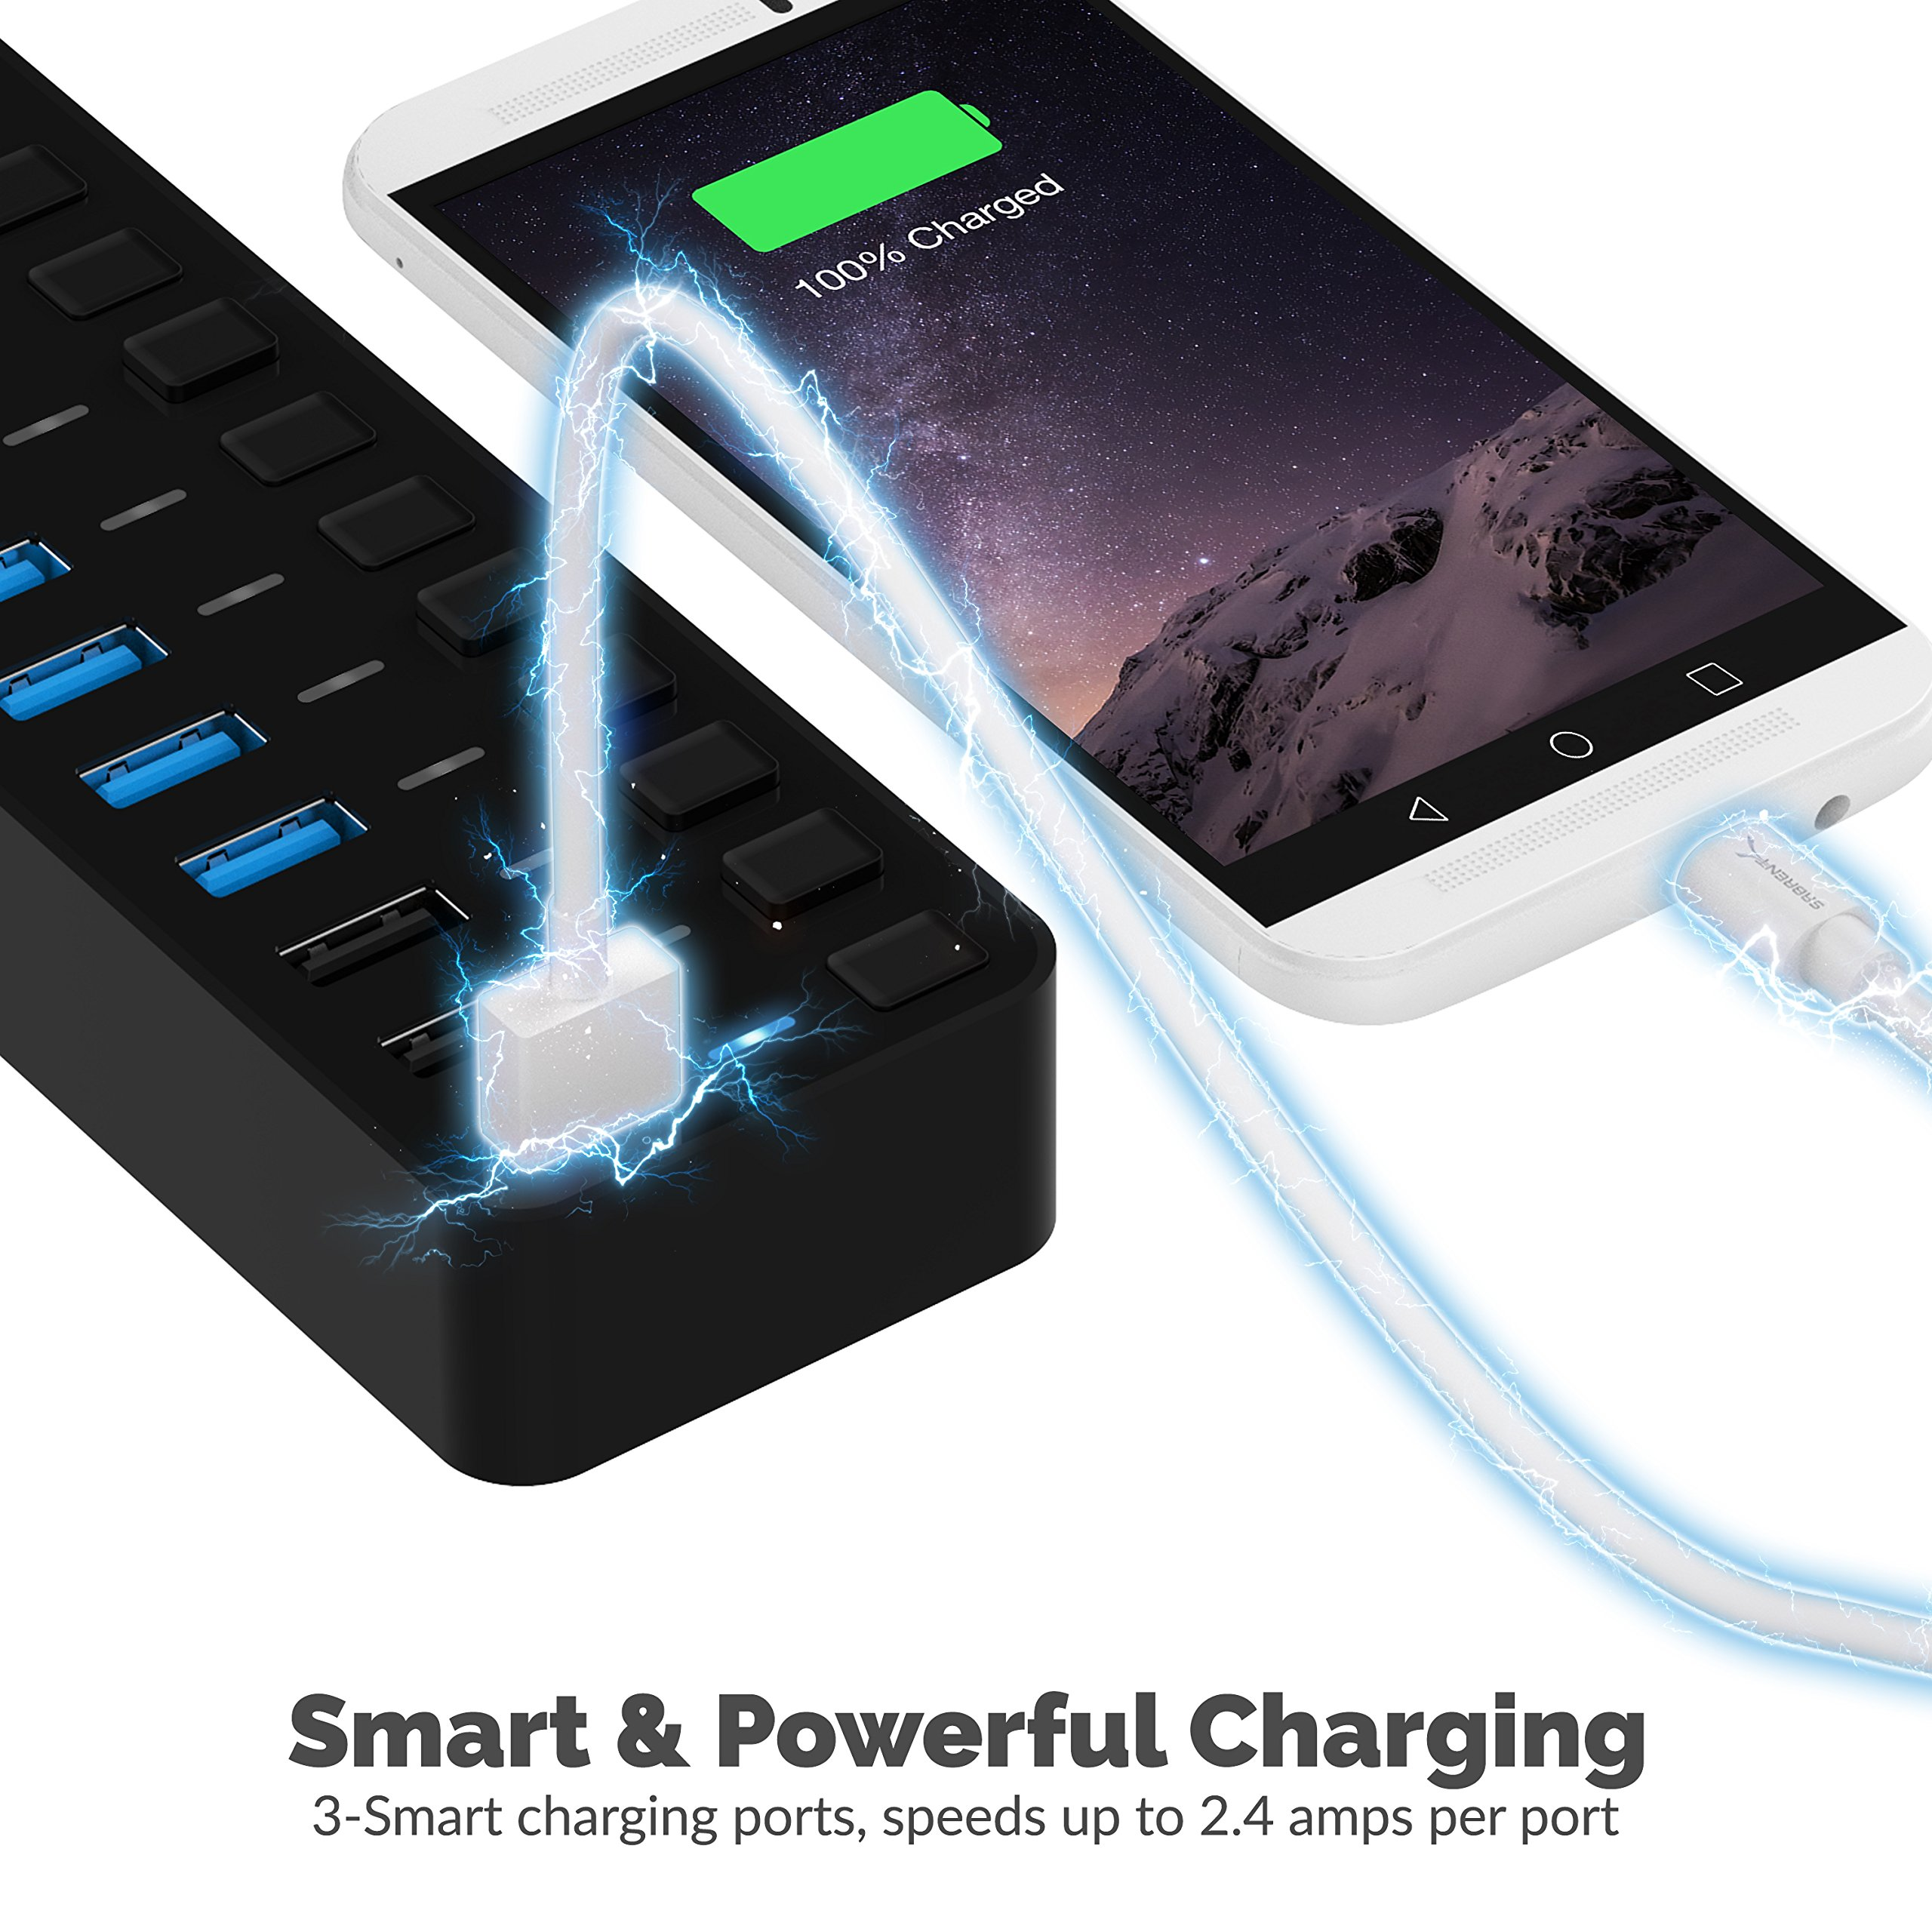 Sabrent 60W 7-Port USB 3.0 Hub + 3 Smart Charging Ports with Individual Power Switches and LEDs includes 60W 12V/5A power adapter (HB-B7C3) by Sabrent (Image #3)